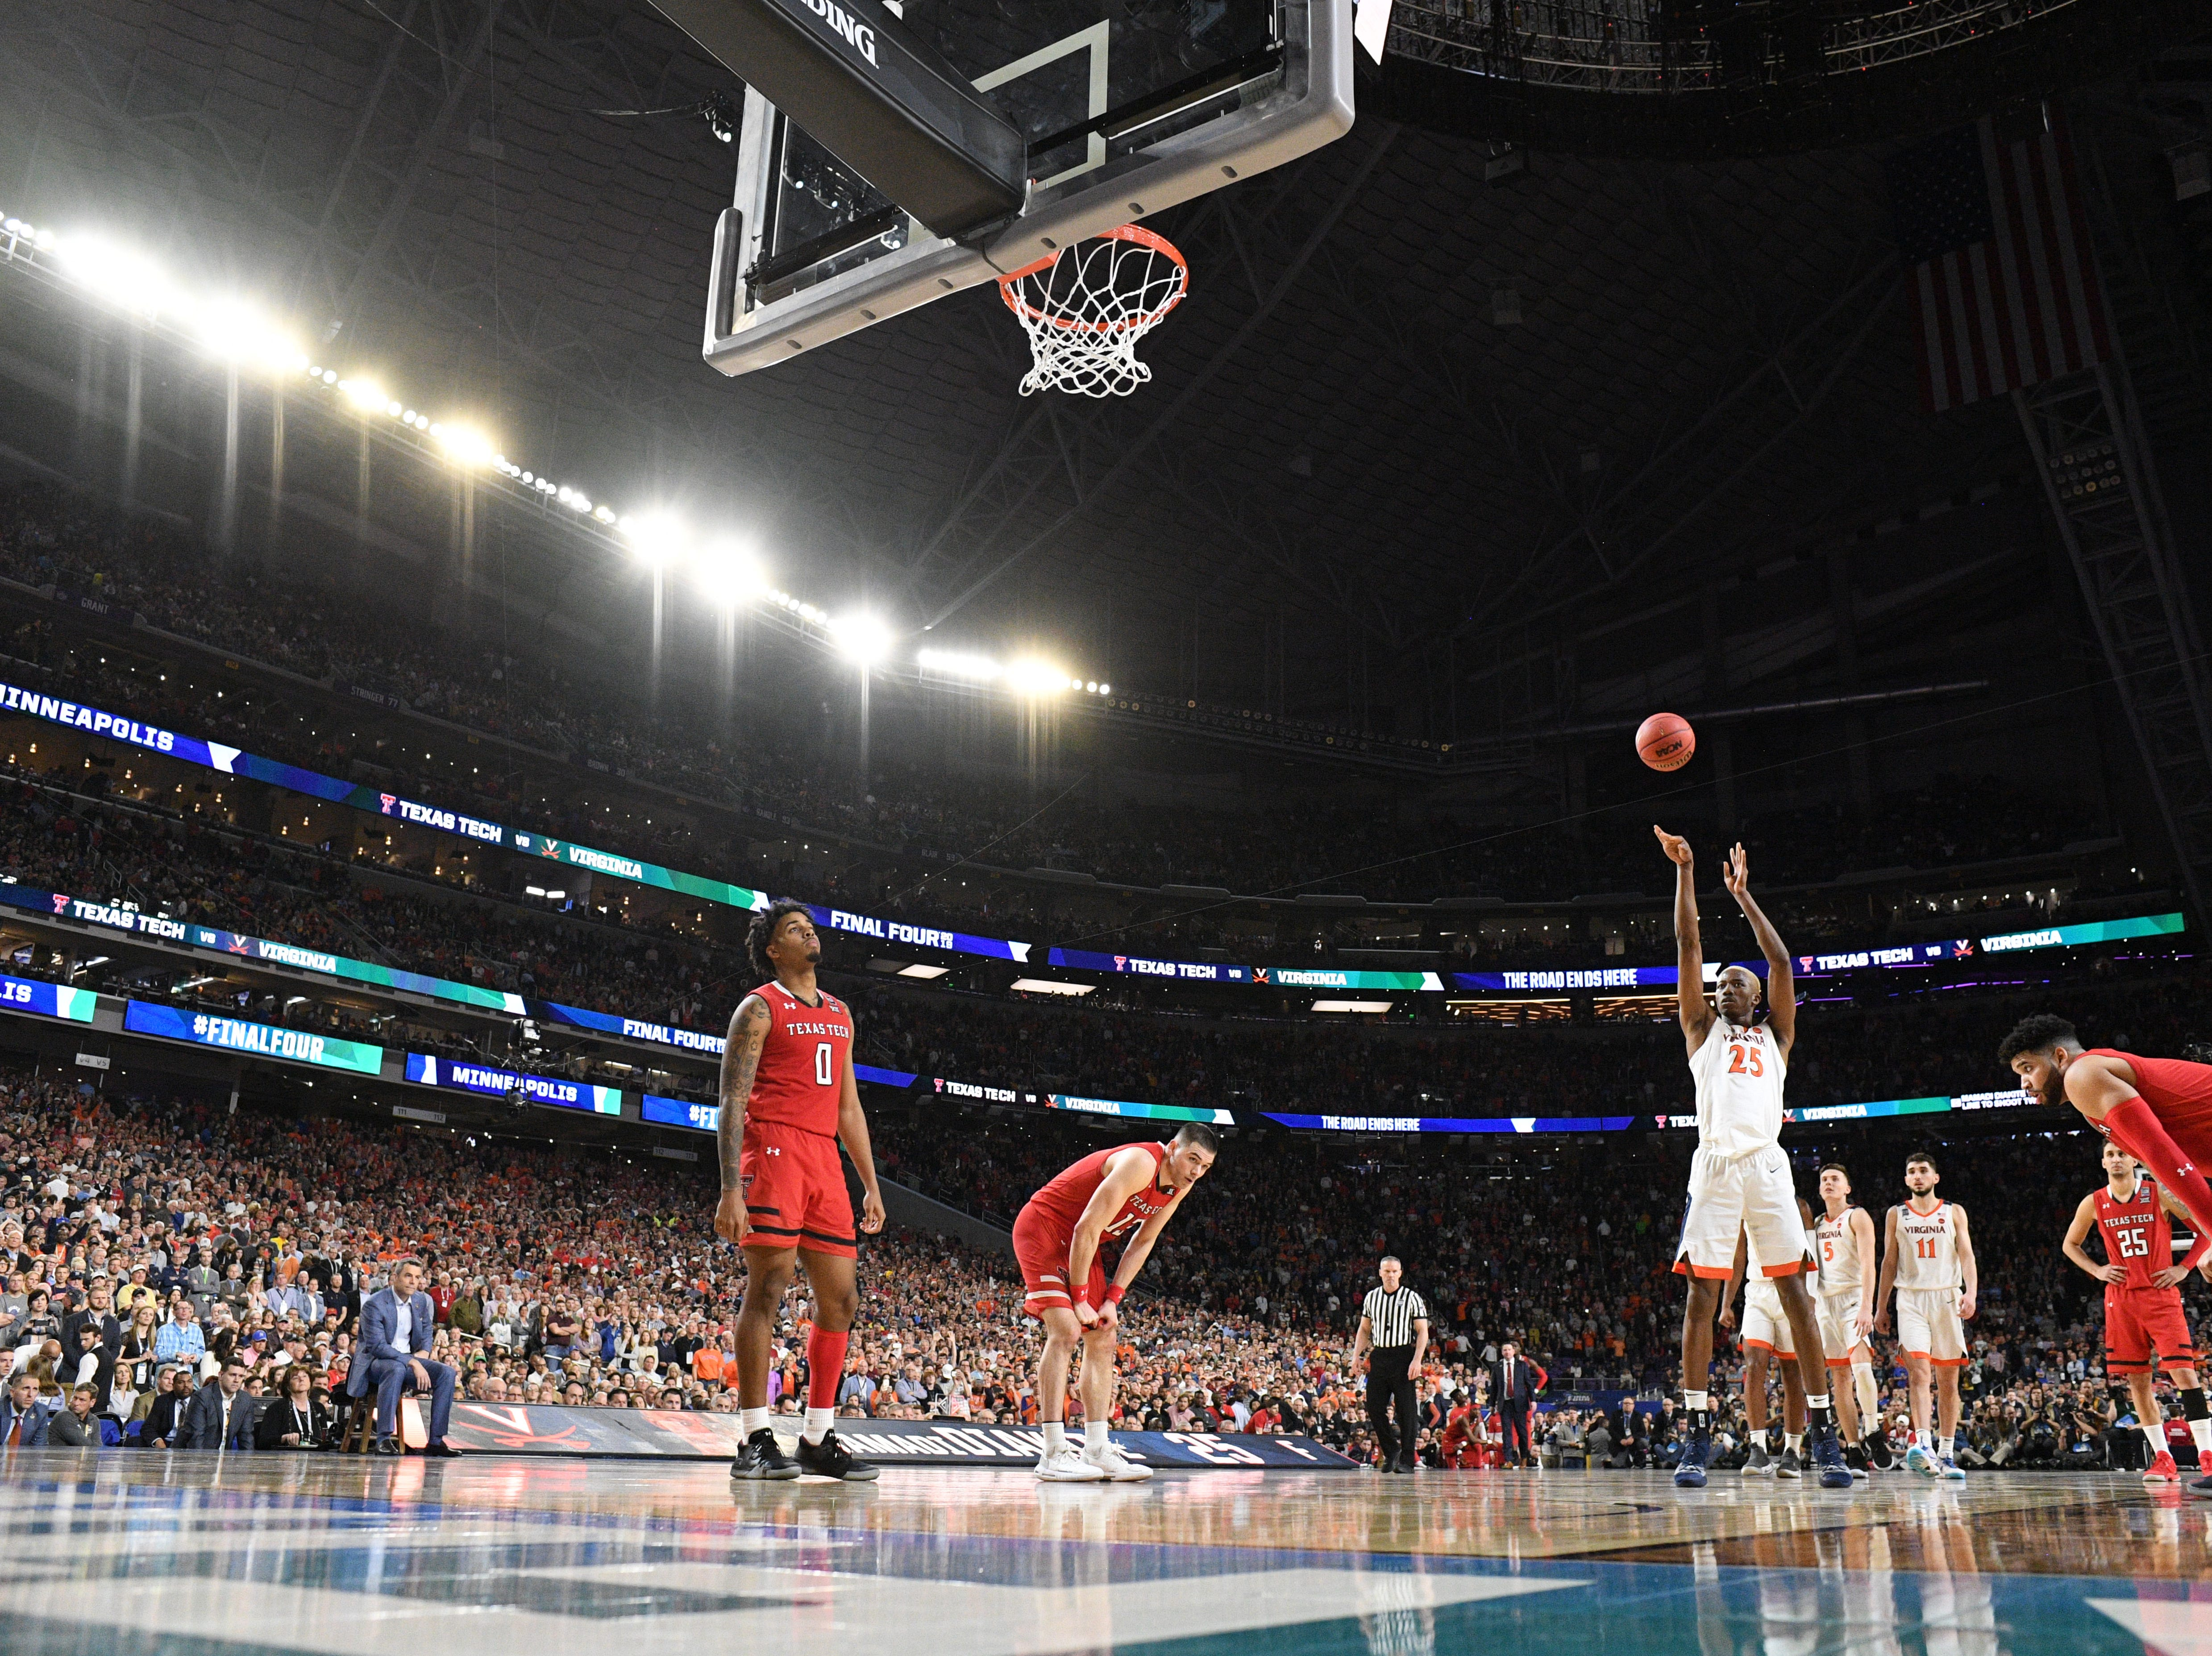 Apr 8, 2019; Minneapolis, MN, USA; Virginia Cavaliers forward Mamadi Diakite (25) hits late a late free throw in overtime against the Texas Tech Red Raiders in the championship game of the 2019 men's Final Four at US Bank Stadium. Mandatory Credit: Robert Deutsch-USA TODAY Sports